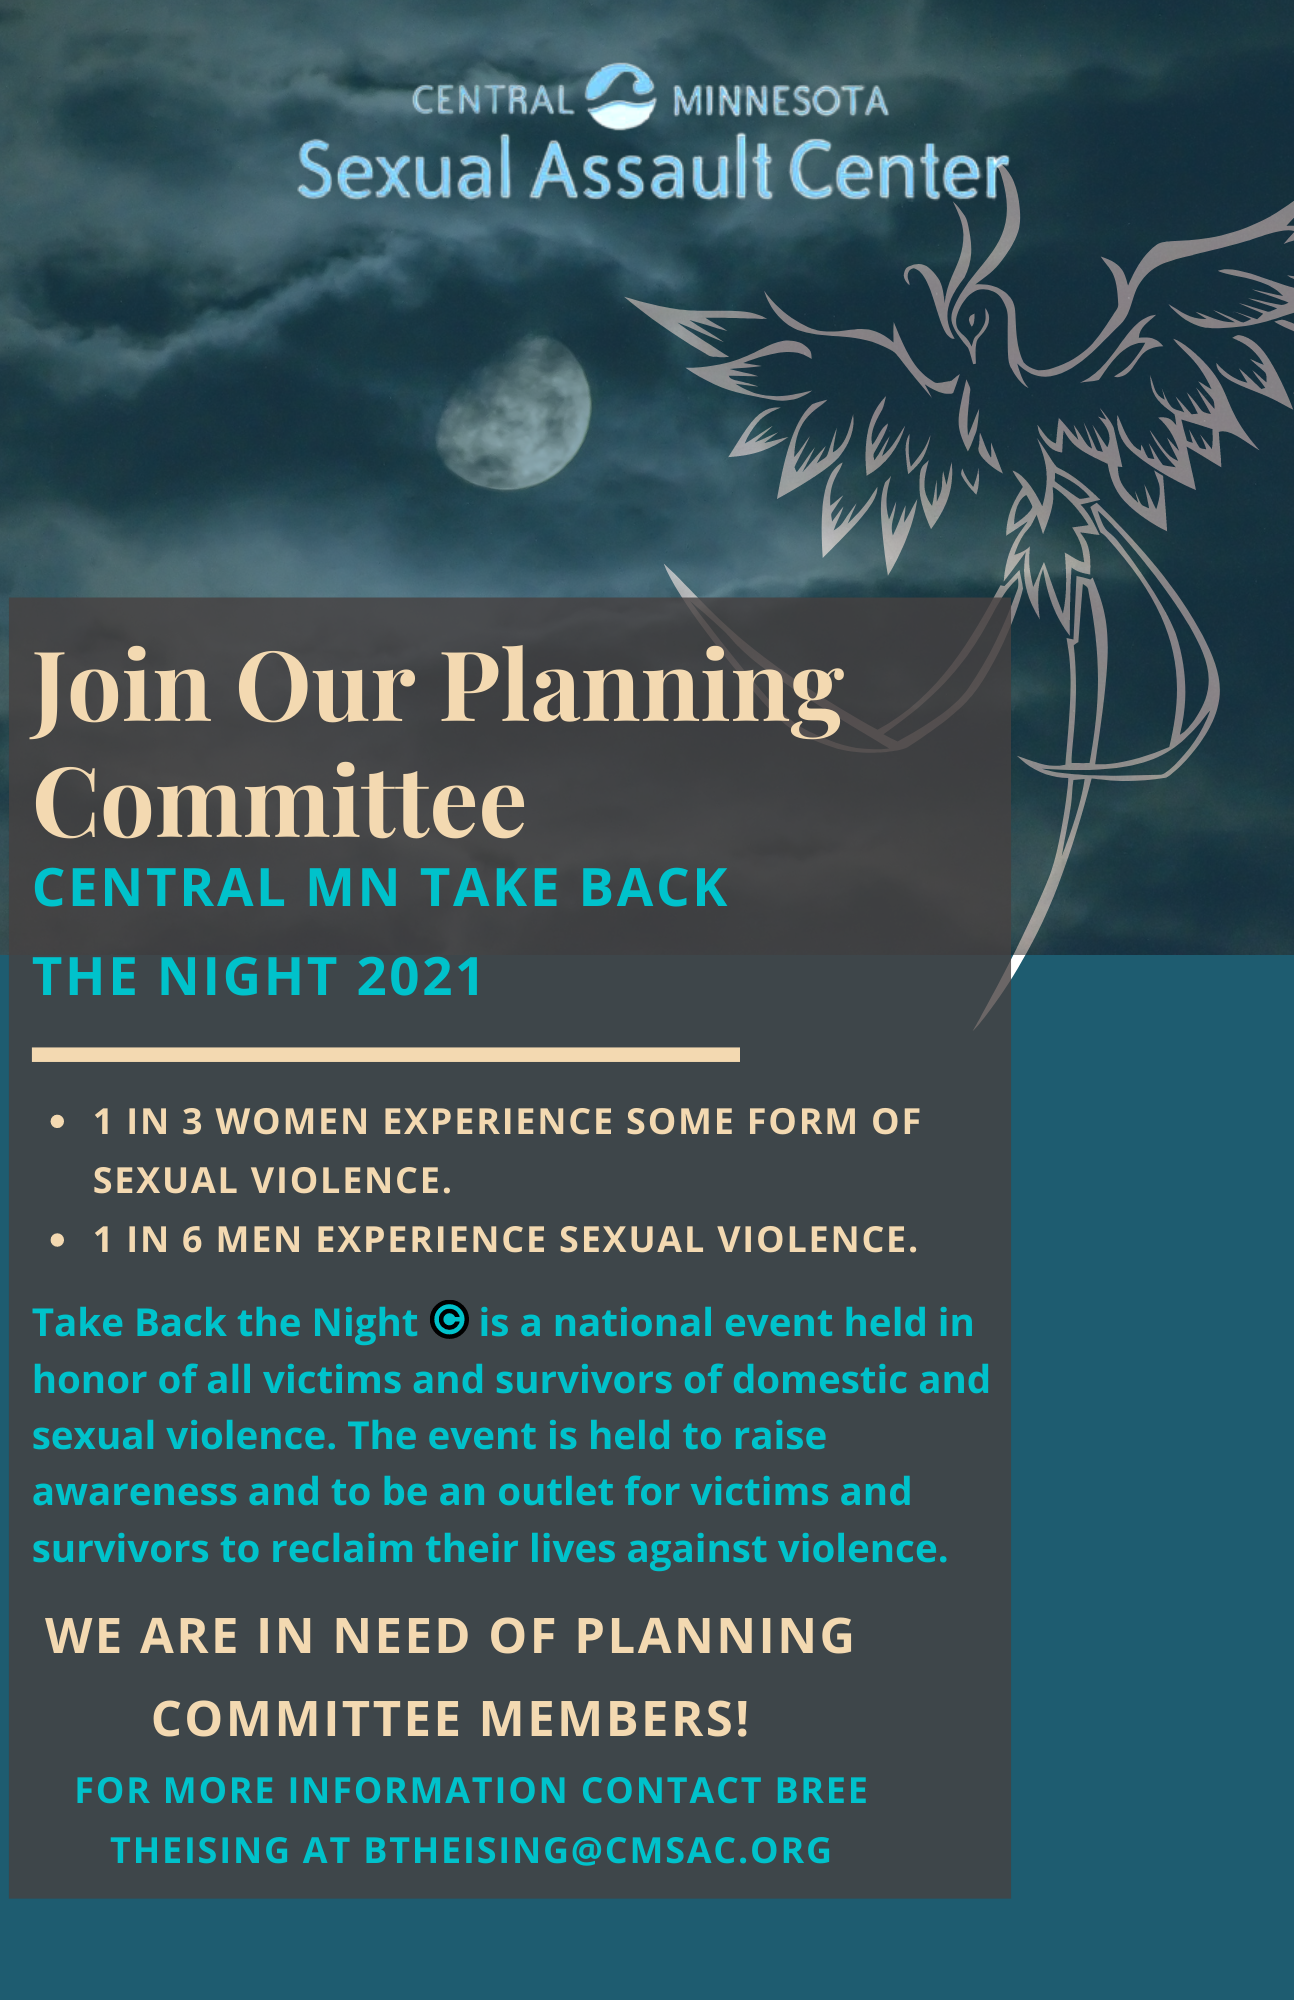 Take Back the Night 2021 Flyer